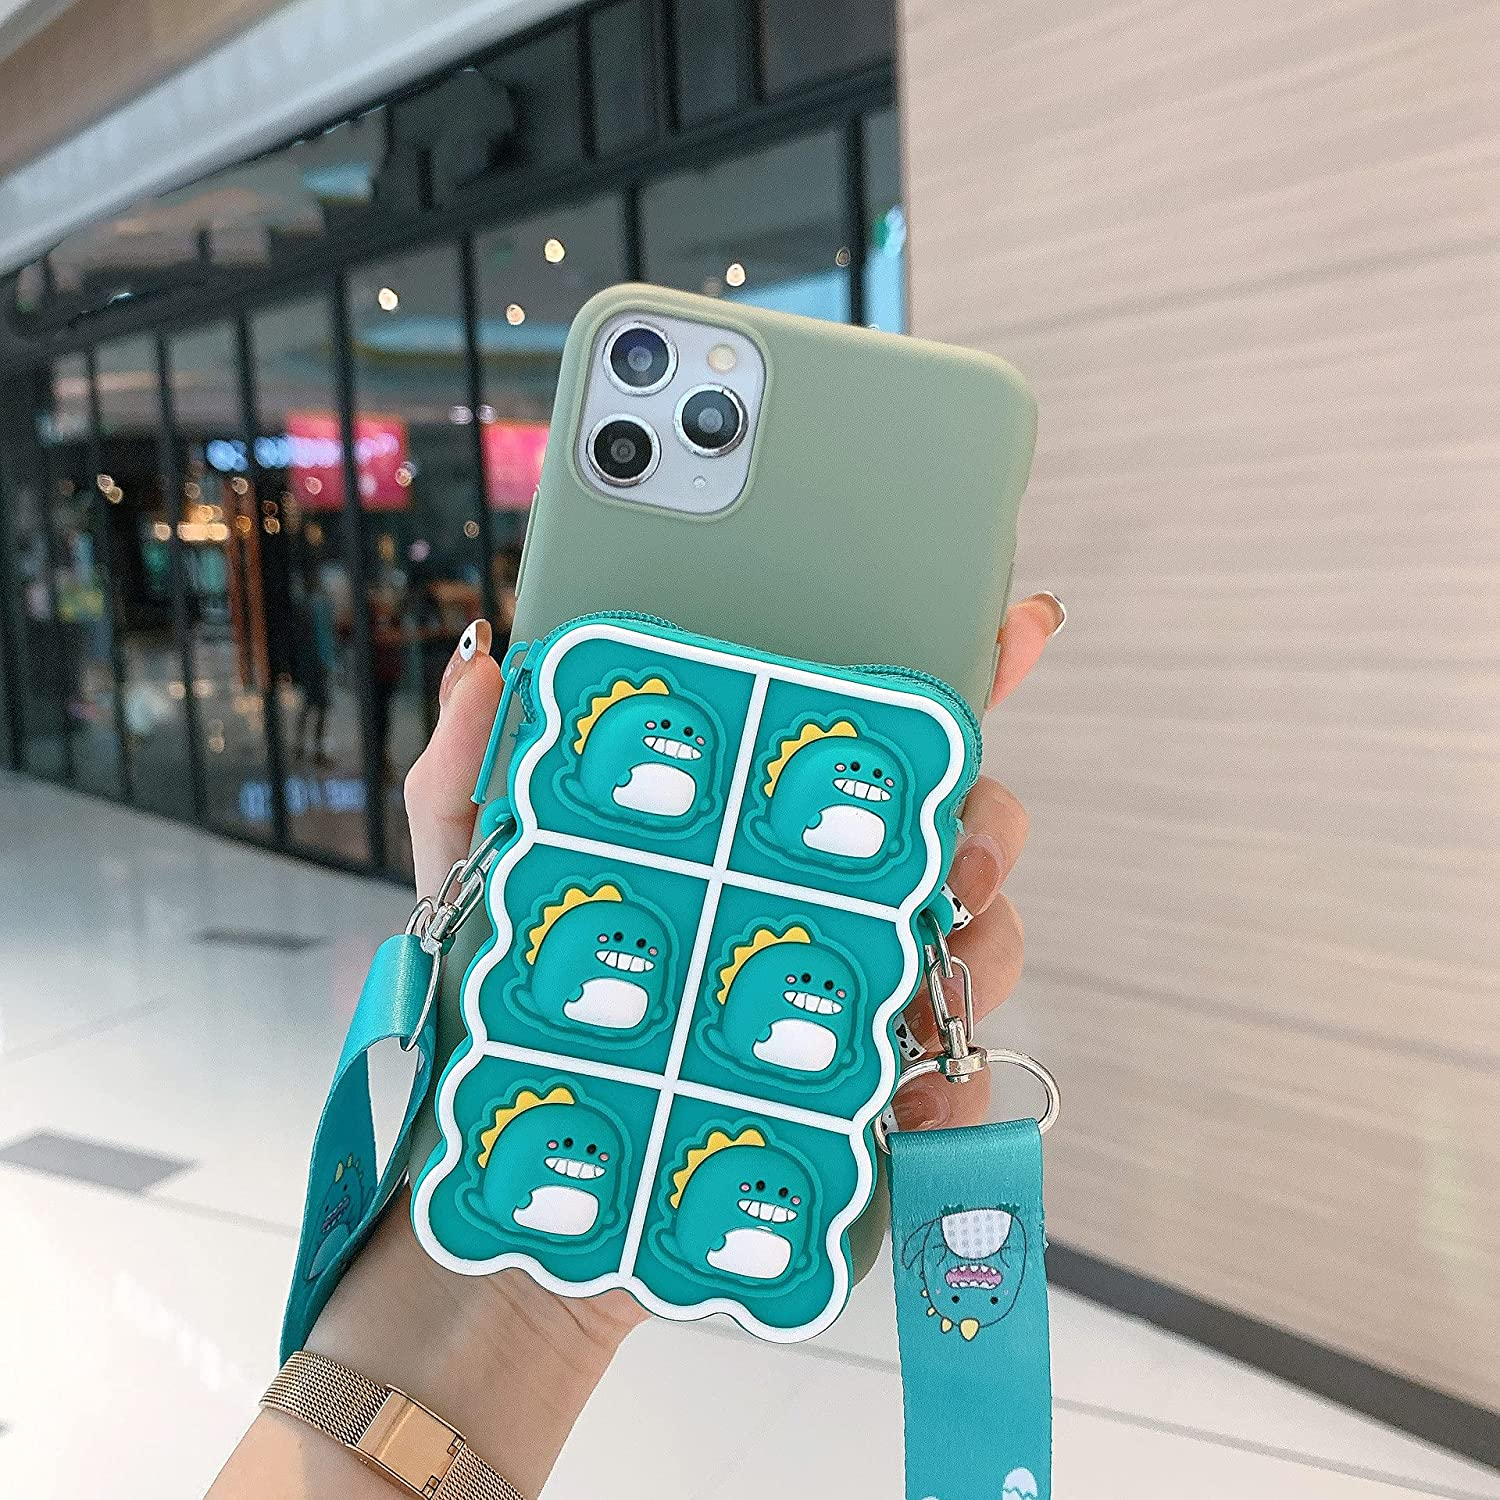 ISYSUII Kickstand Case for Samsung Galaxy S20 Cute Cartoon Animal Character TPU Soft Silicone Protective Case with Card Holder Crossbody Strap Lanyard for Kids Girls Women,Green Dinosaur